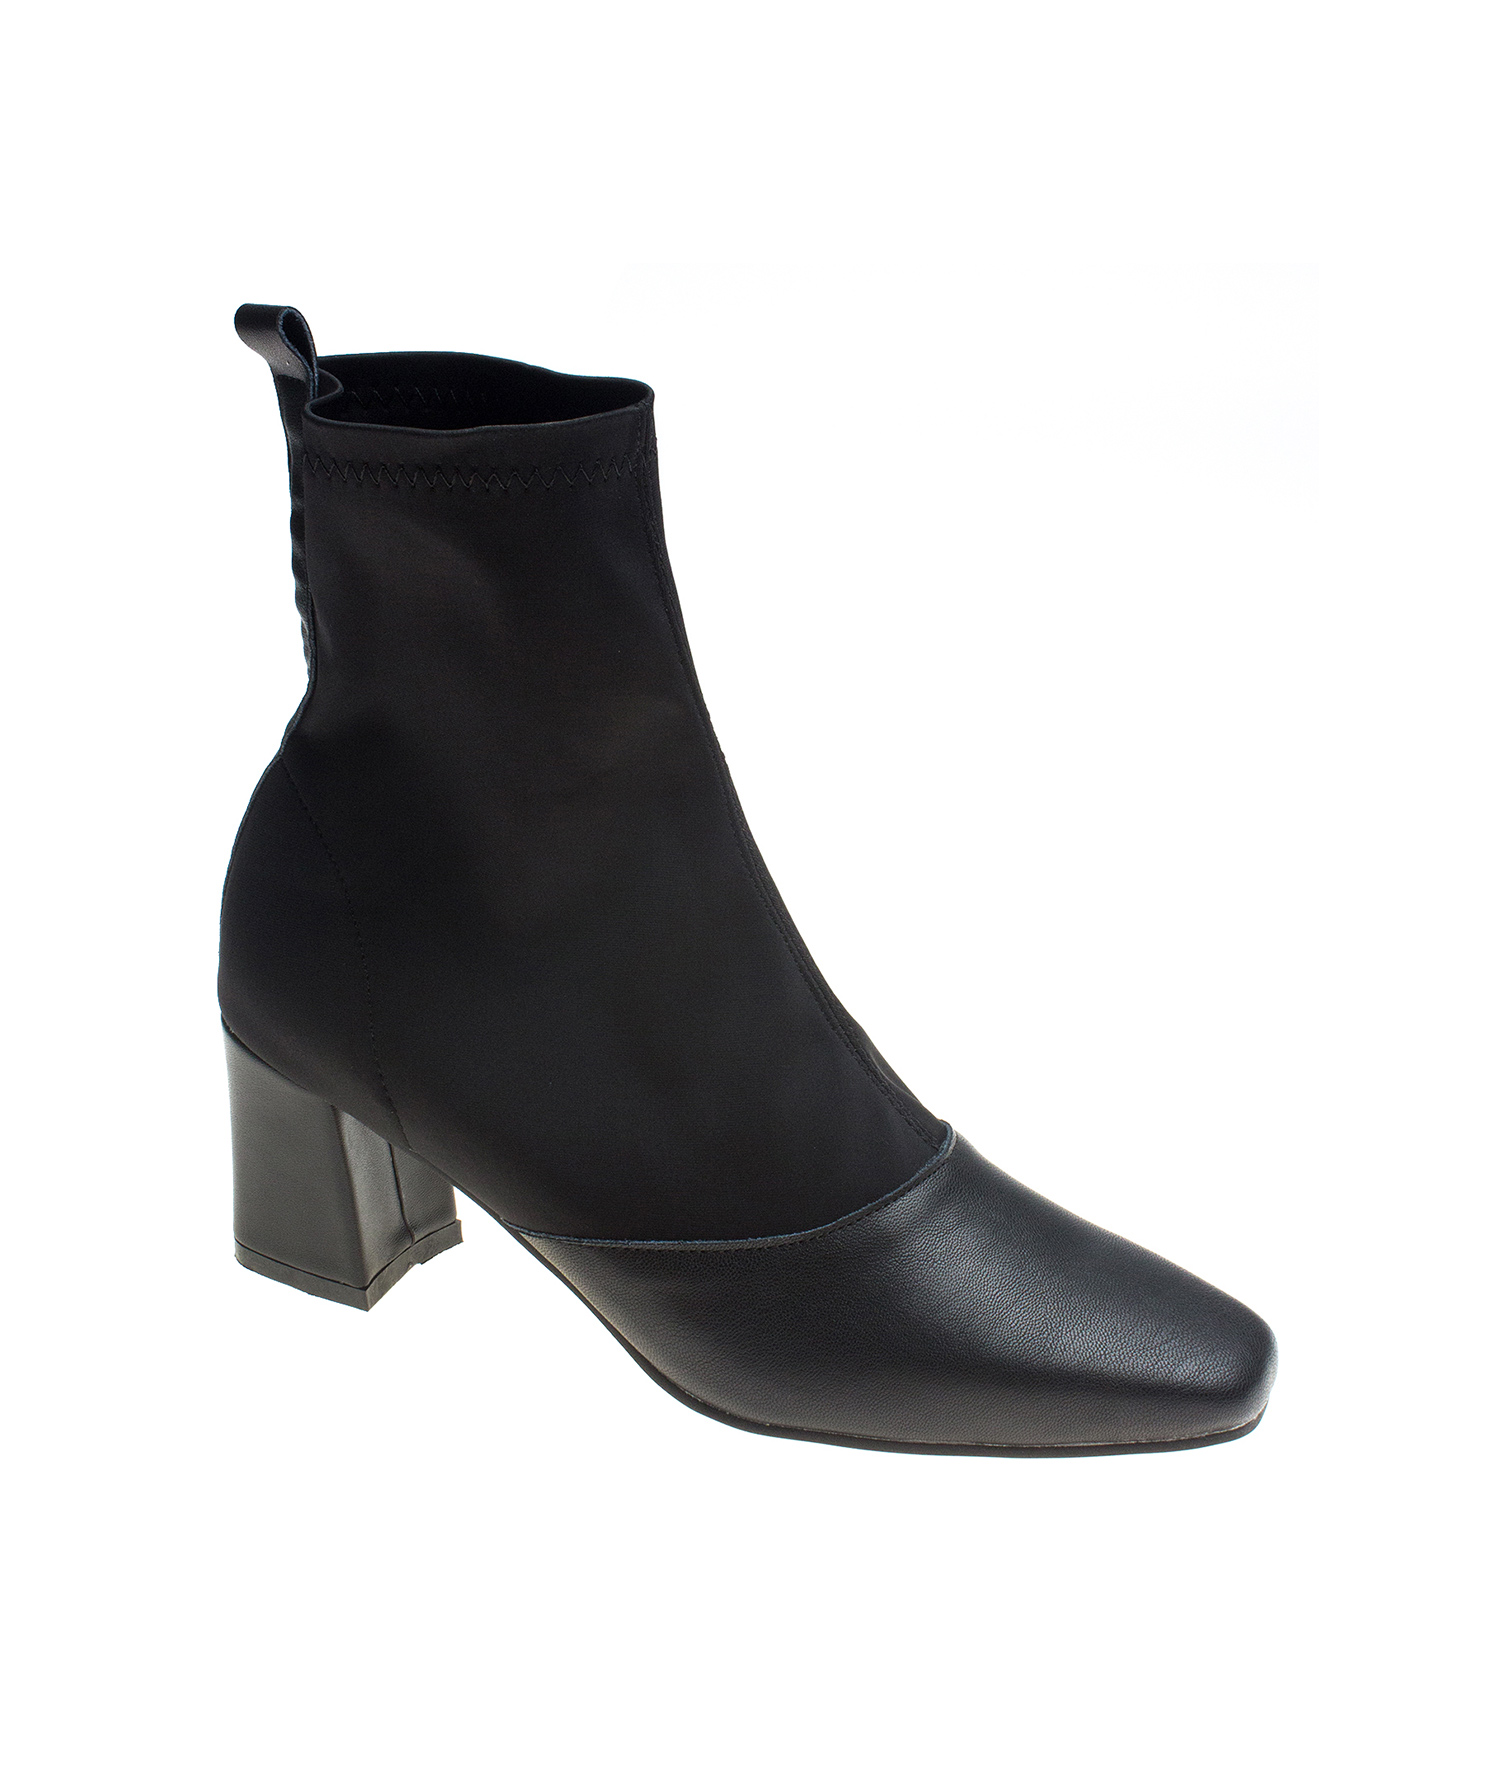 5bea4e0d24546 AnnaKastle Womens Stretch Shaft Leather Heel Boots Booties Black